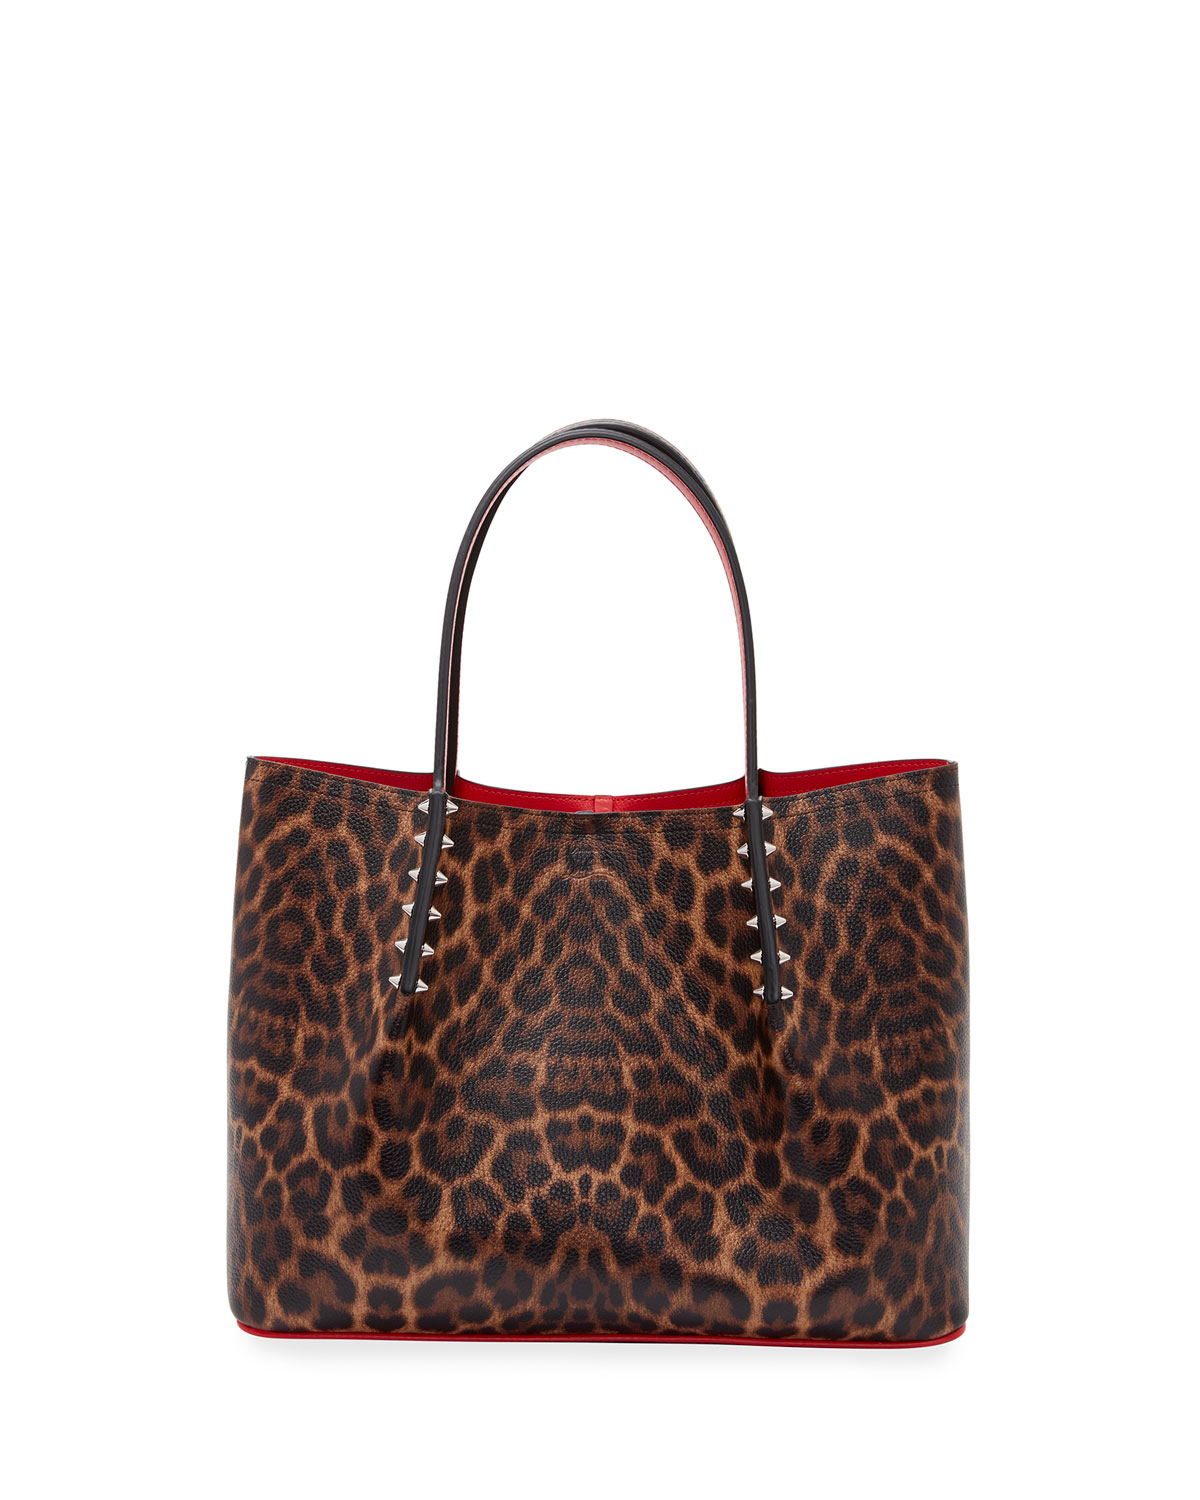 Christian Louboutin CABAROCK SMALL CALF EMPIRE LEOPARD 50S TOTE BAG